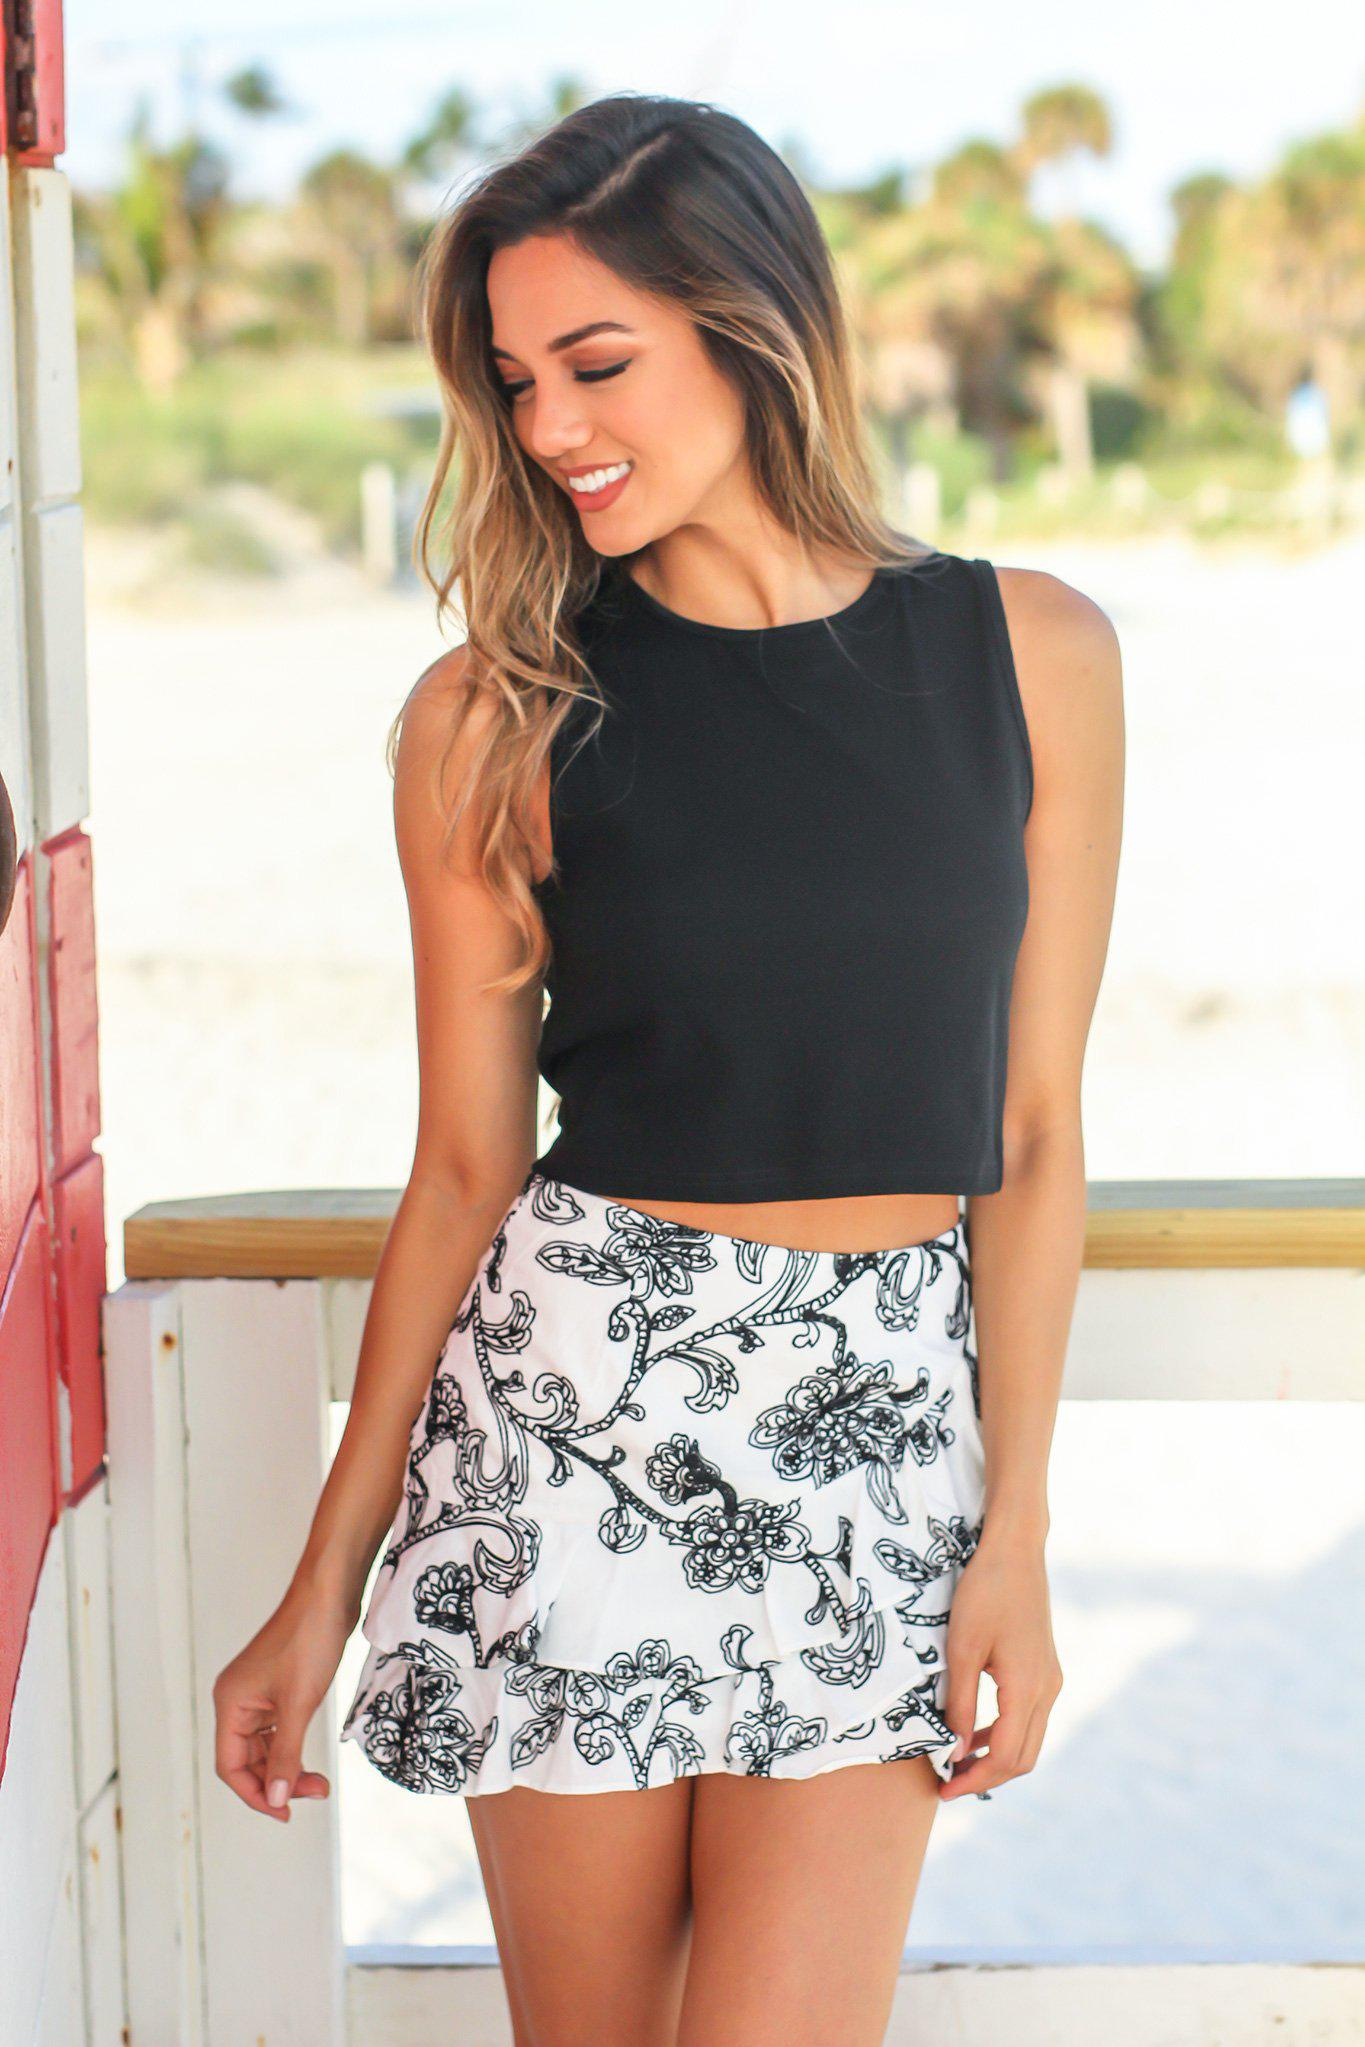 Black and White Ruffle Mini Skirt